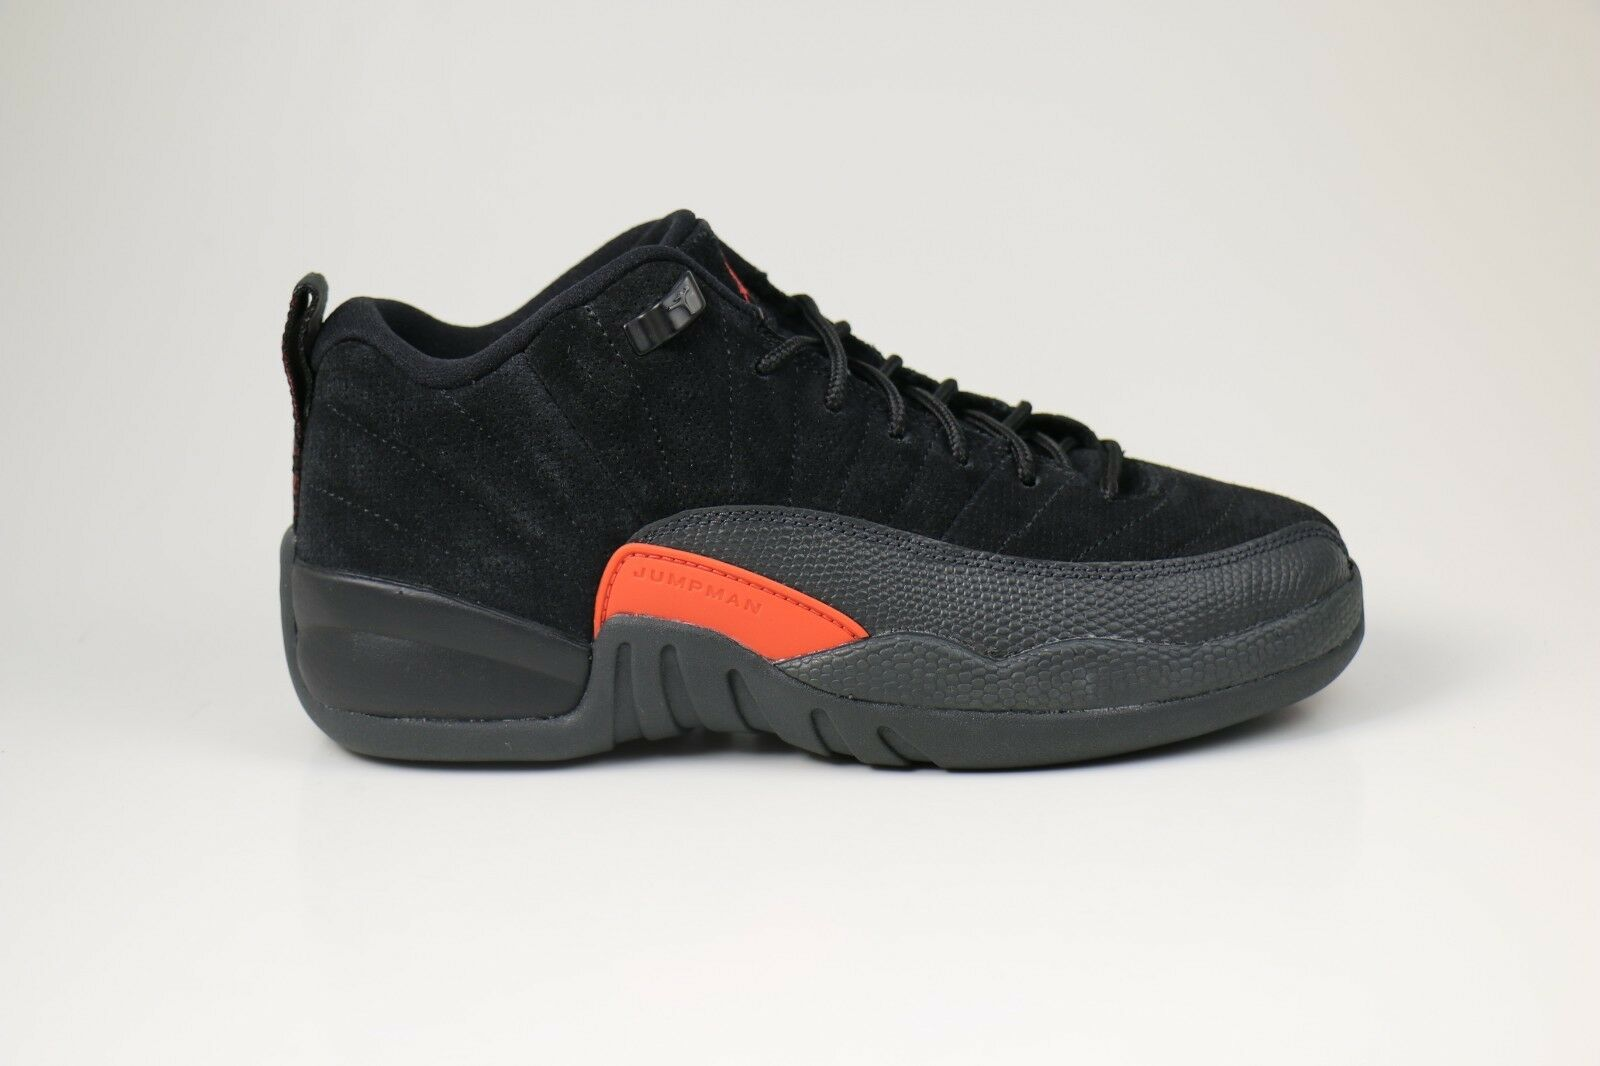 Nike Air Jordan 12 Retro Low BG Noir US US US Max Orange EUR 38 US Noir 69751b